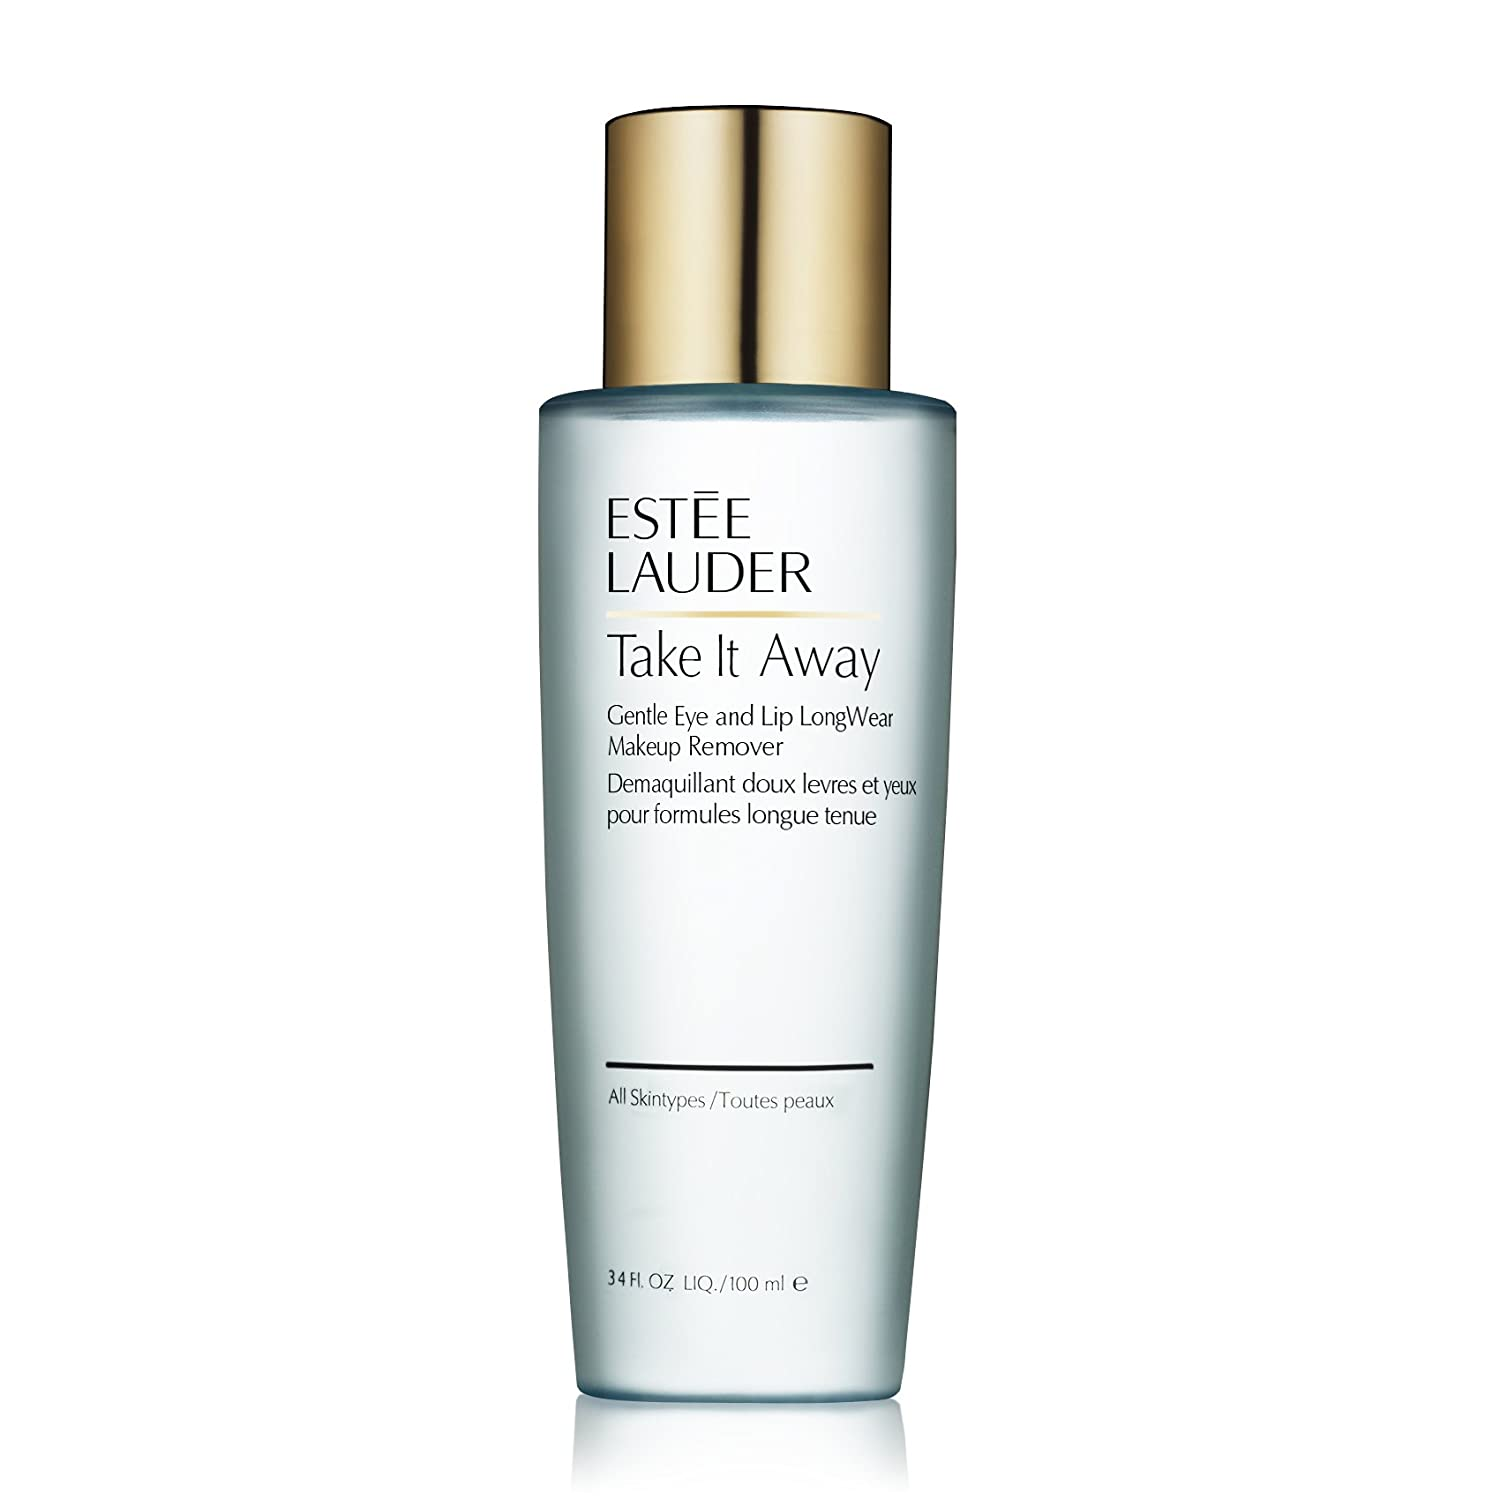 Estee Lauder Take It Away Gentle Eye and Lip Long-Wear Makeup Remover, 3.4 Ounce estee lauder spf15 15ml